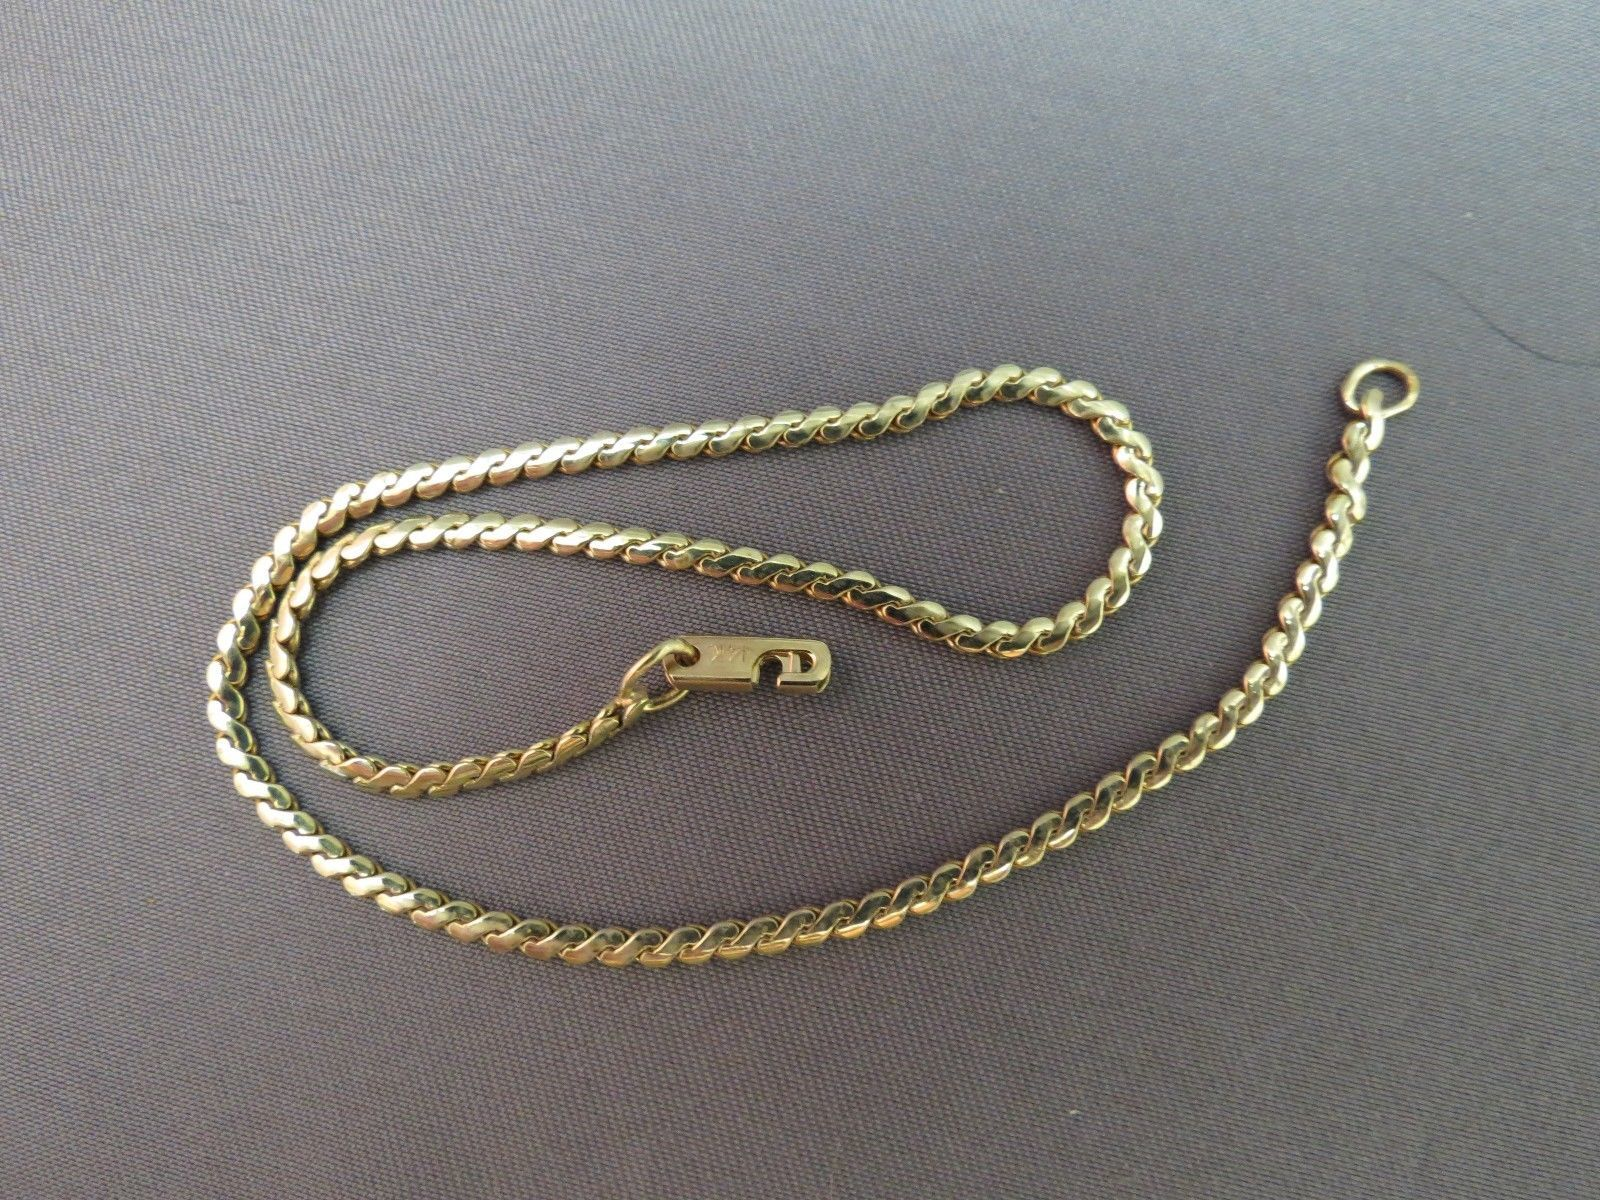 "Rare 14k Yellow Gold Speidel Flat Chain Bracelet 4.82g 2mm 9.25"" Wrist or Ankle"